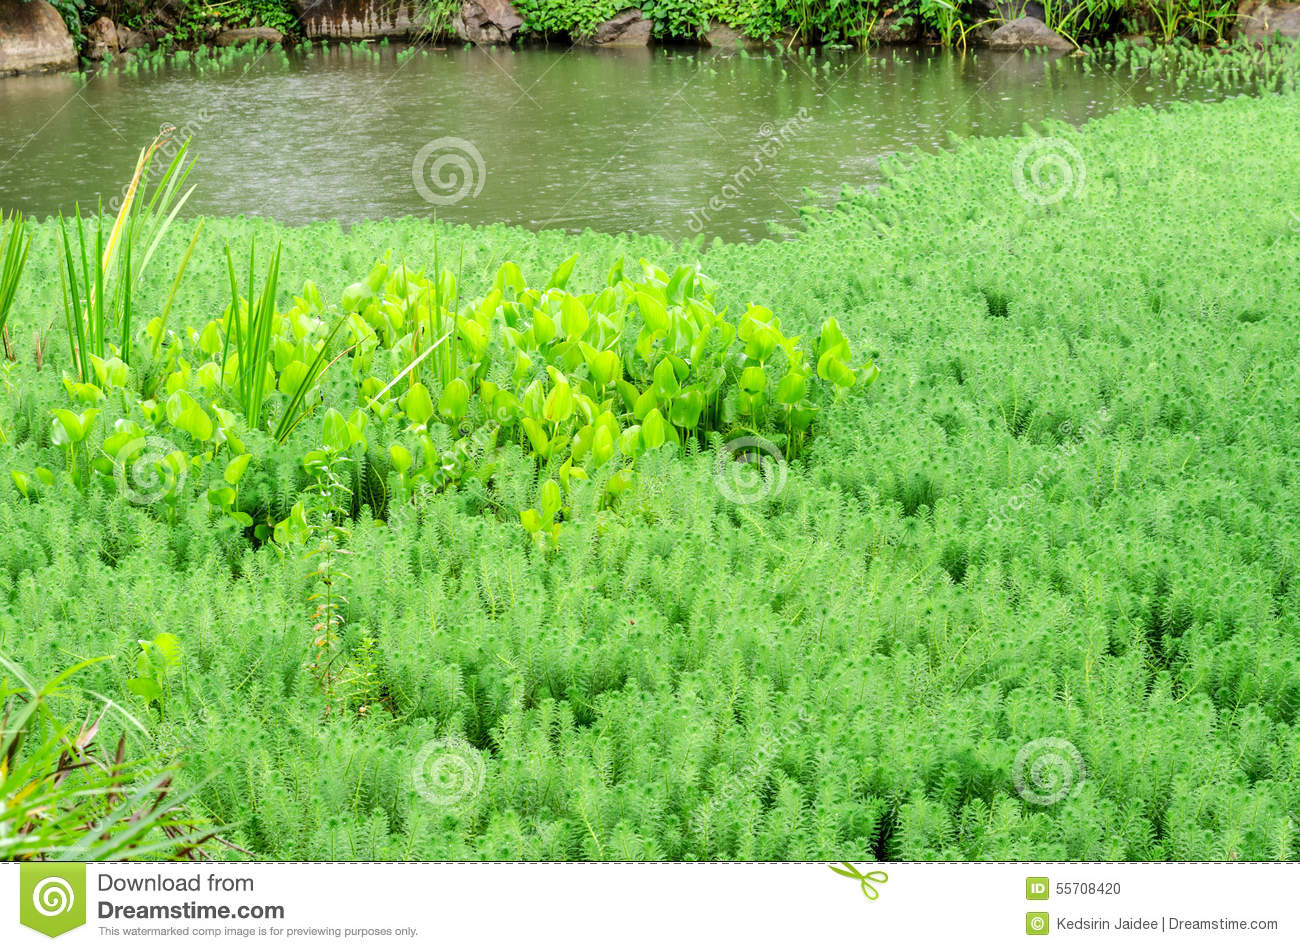 Hydrilla and water hyacinth in pond stock photo image for Green water in pond